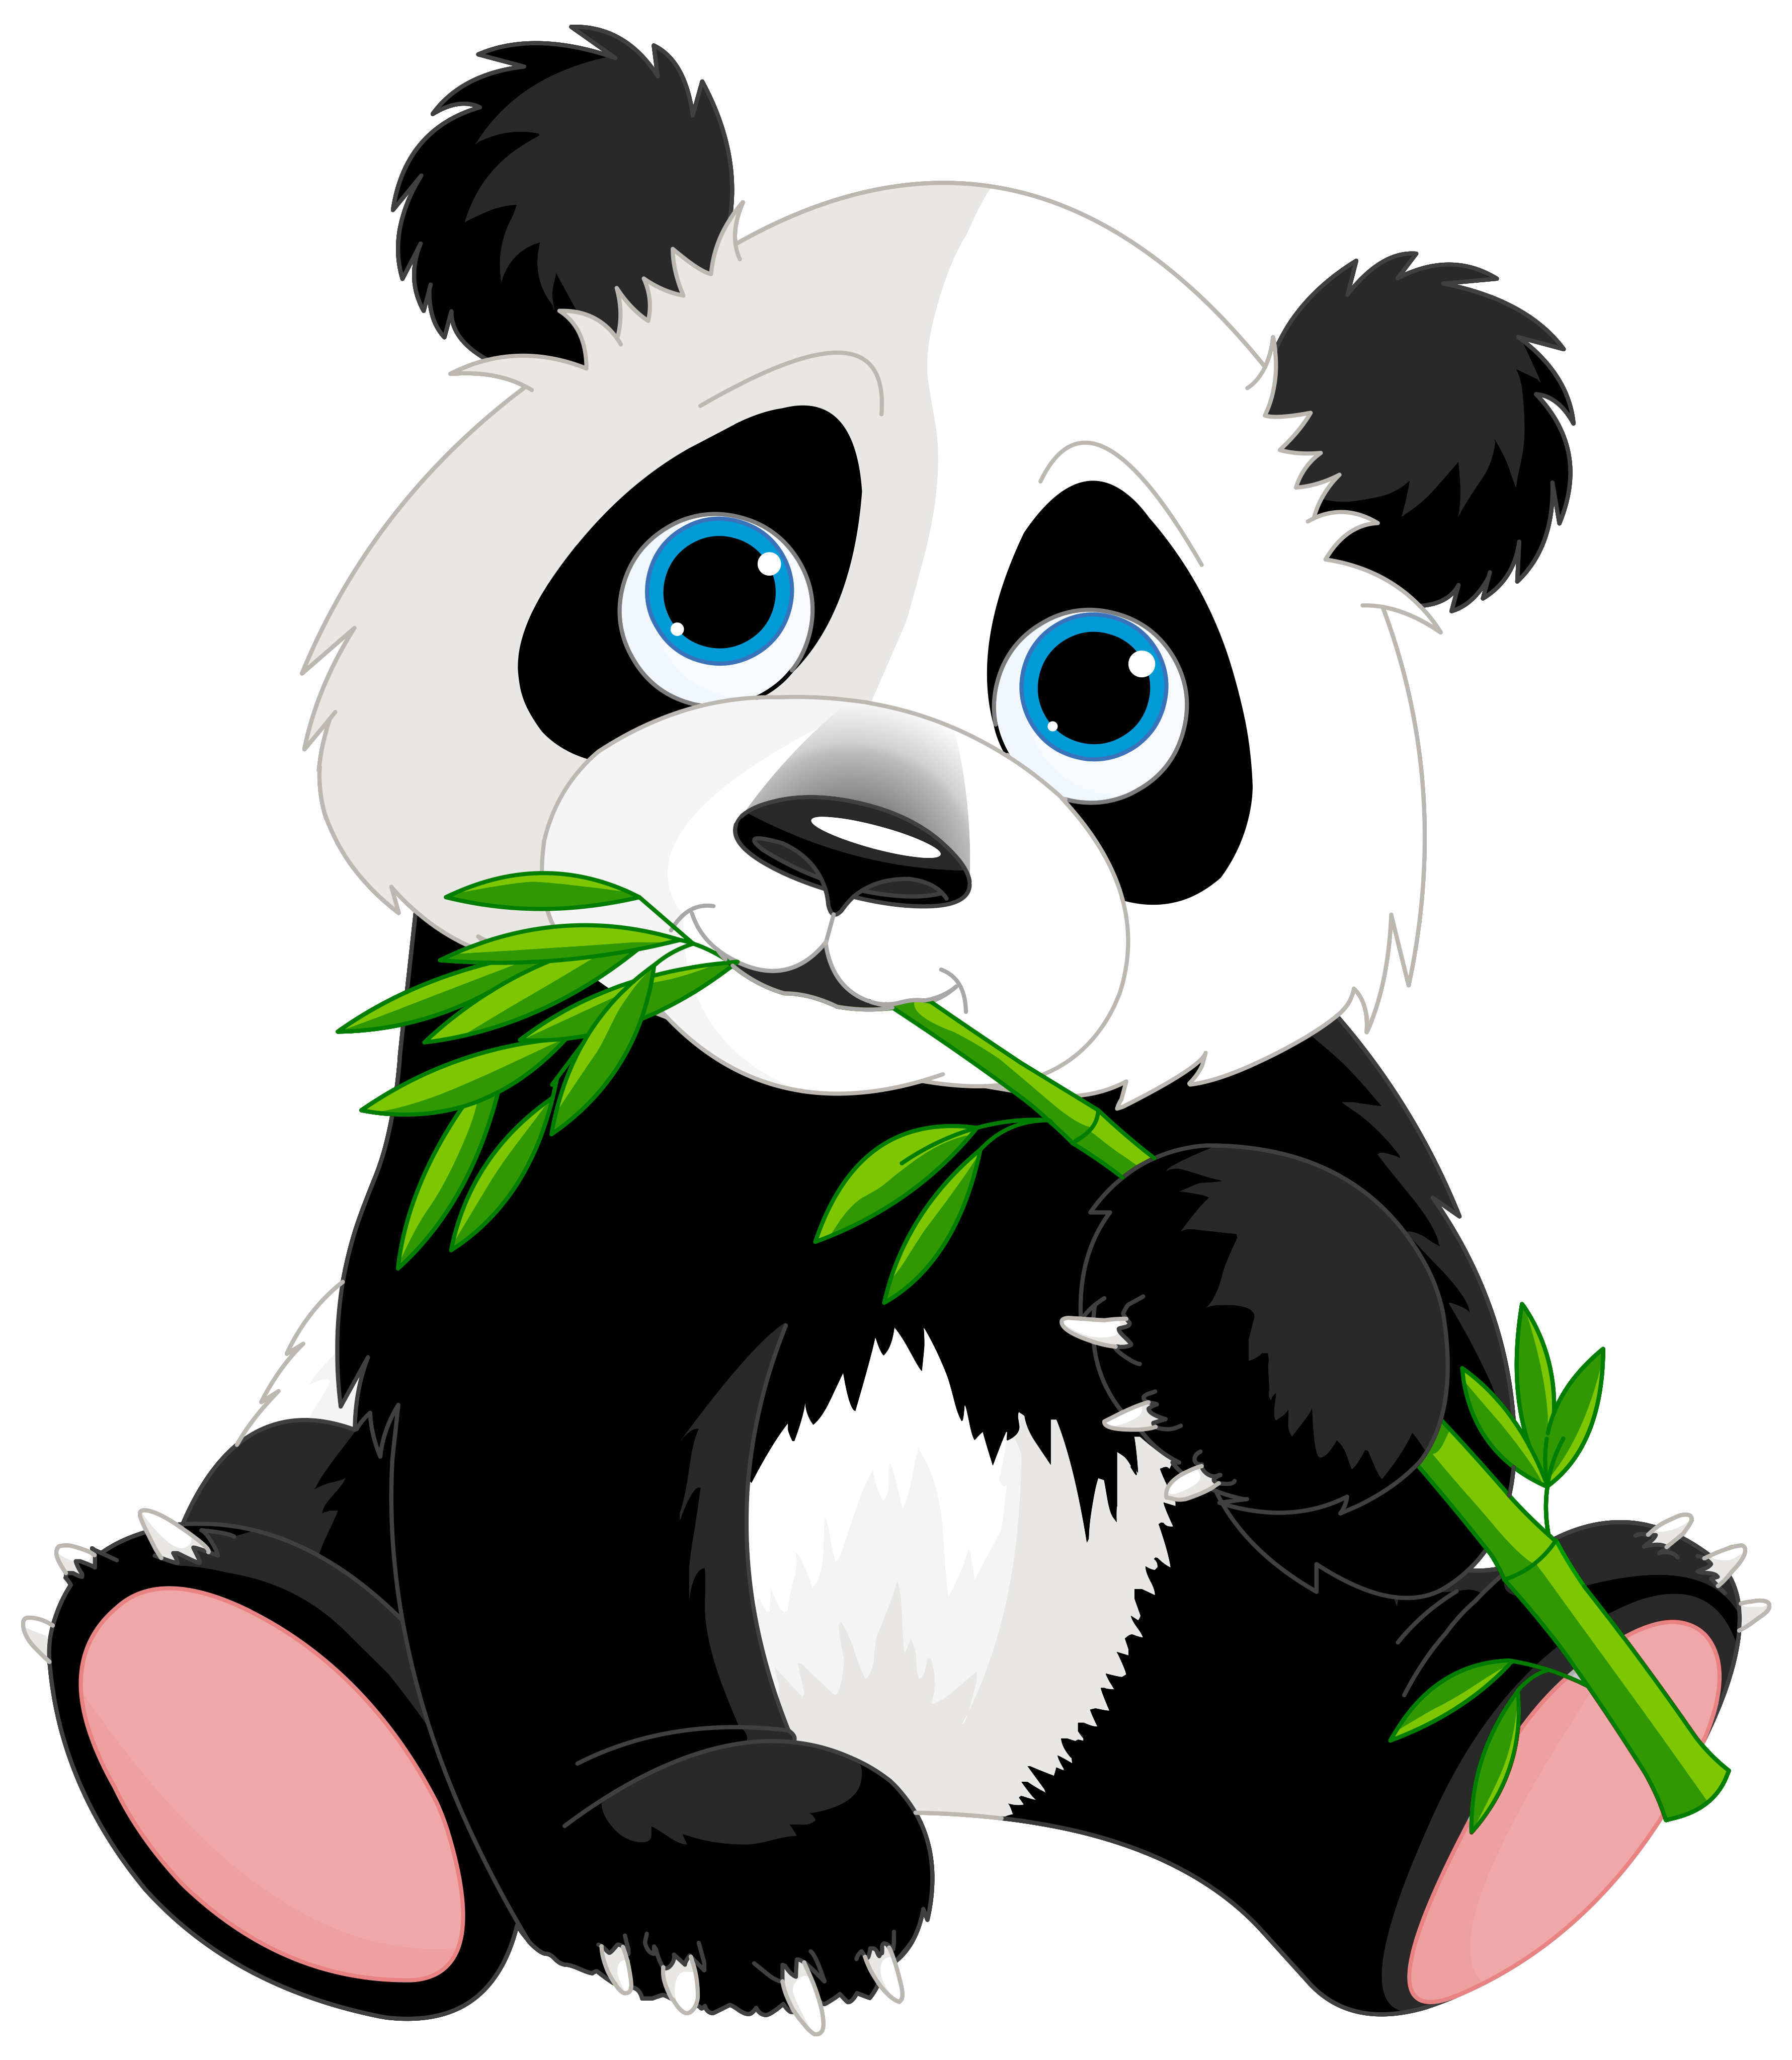 Cute panda cartoon clipart image gallery yopriceville.